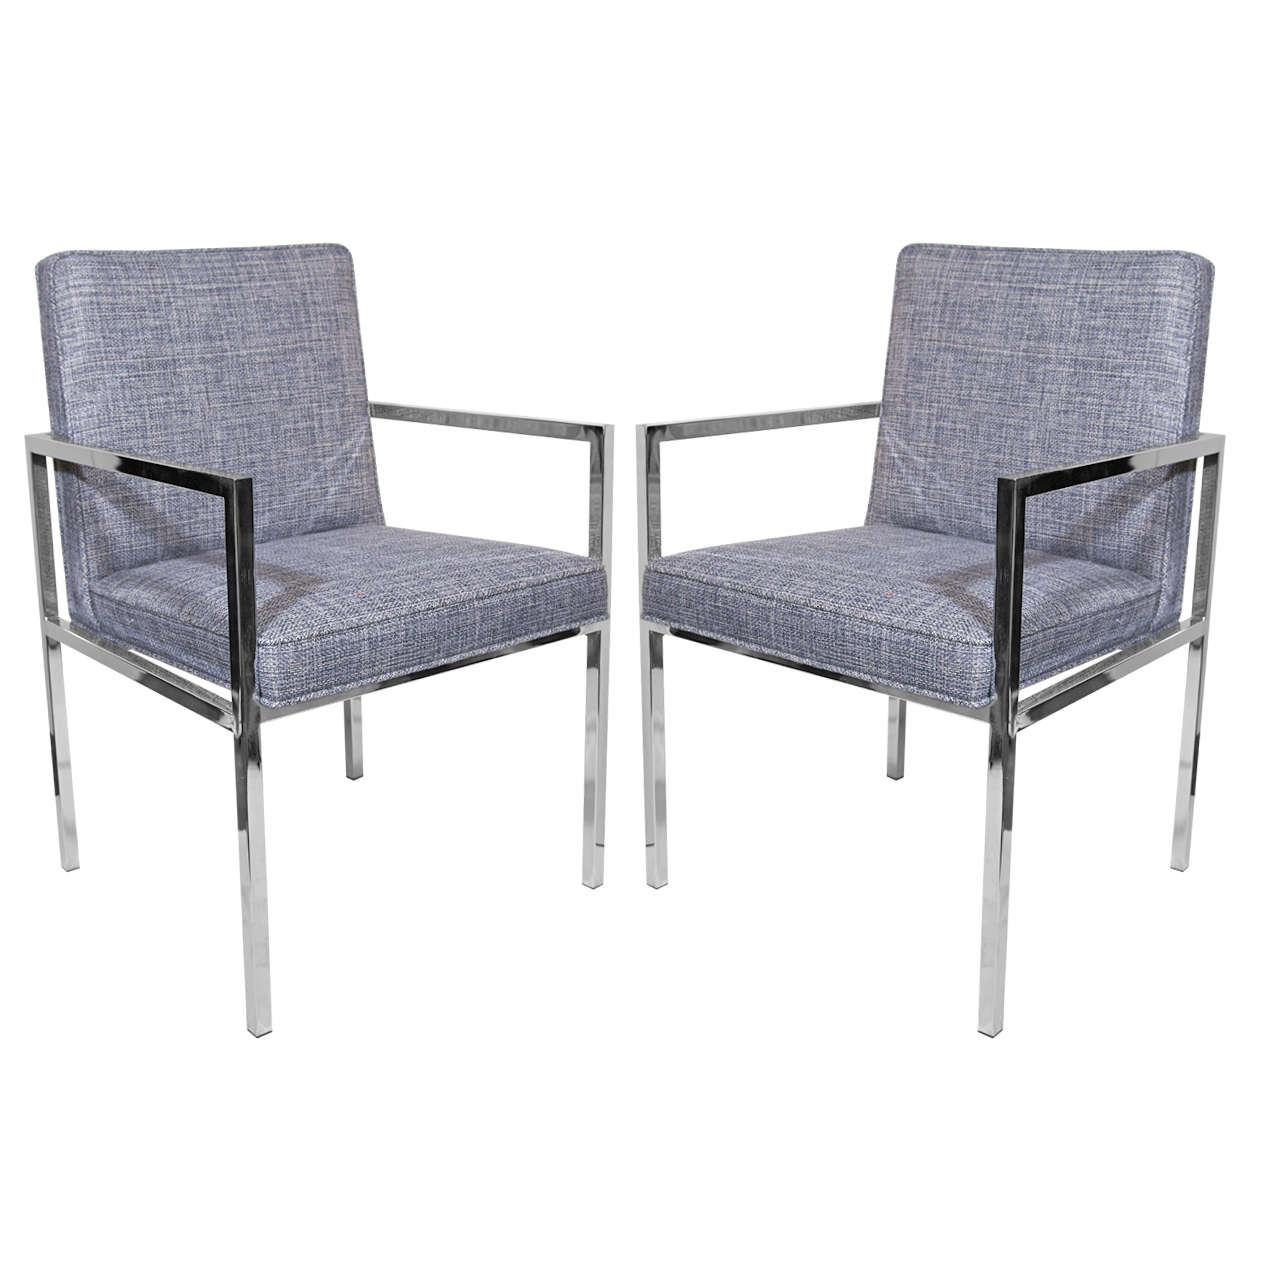 milo baughman chair birthday cover for classroom pair of side chairs in woven rogers and